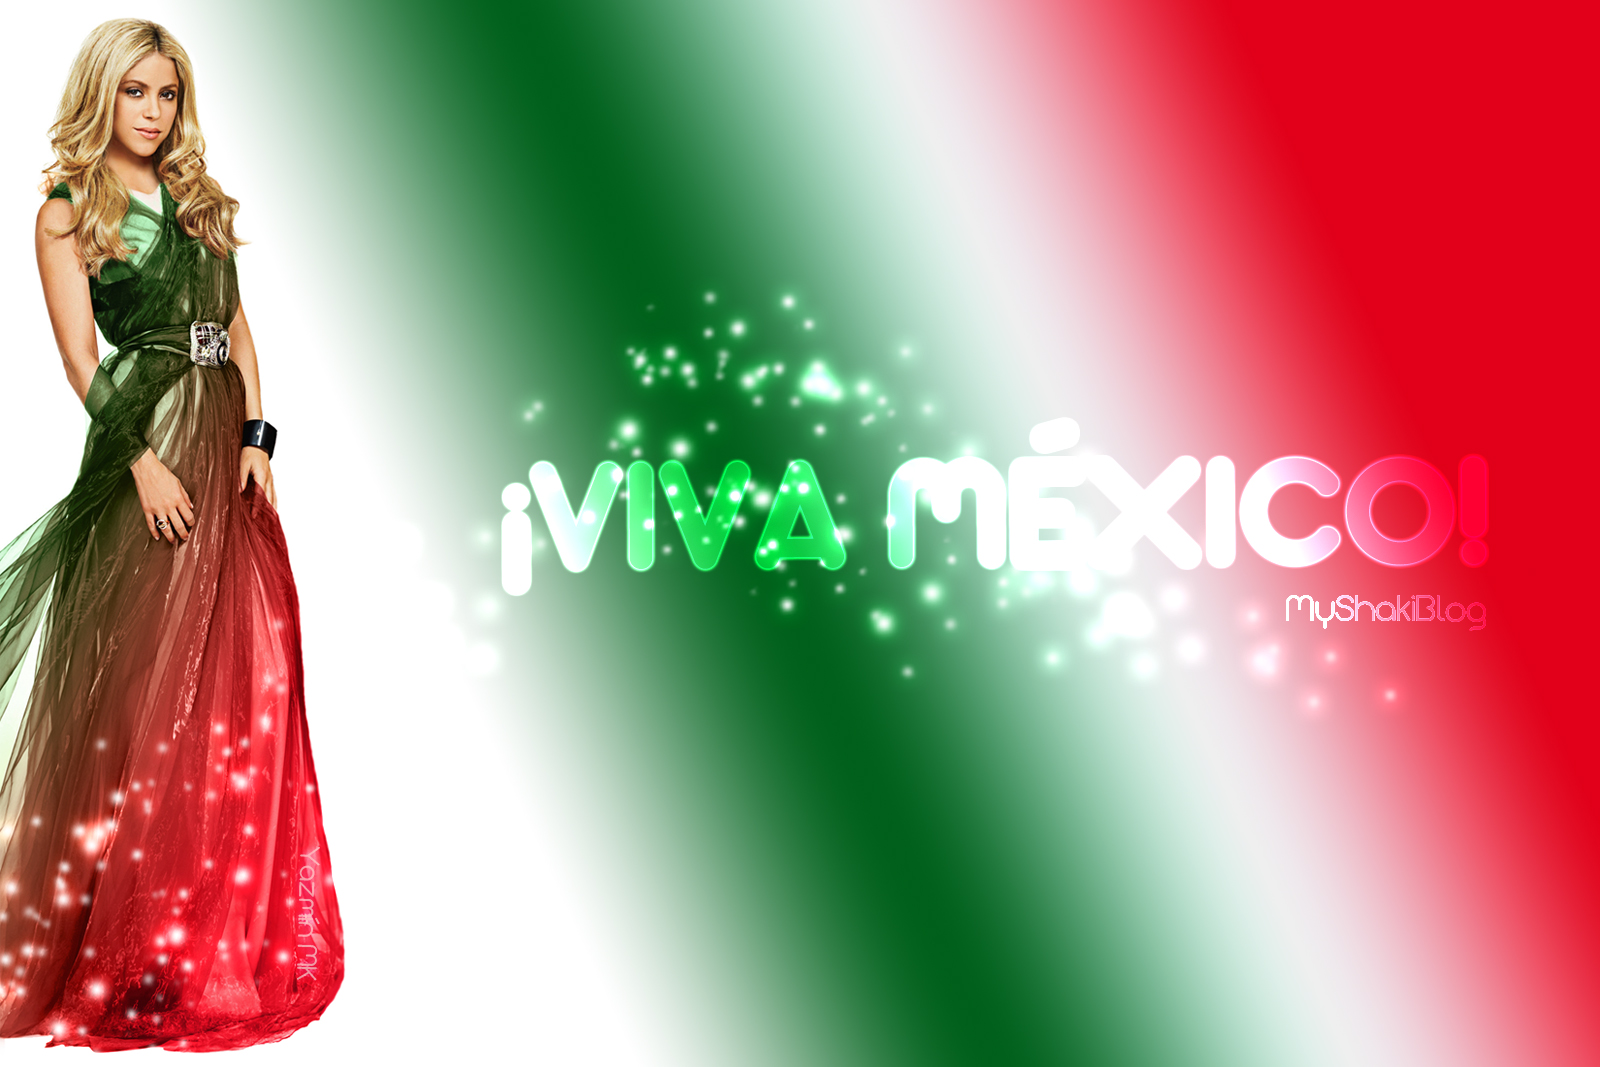 Wallpapers HD: 31 Mexico Fondos De Pantalla